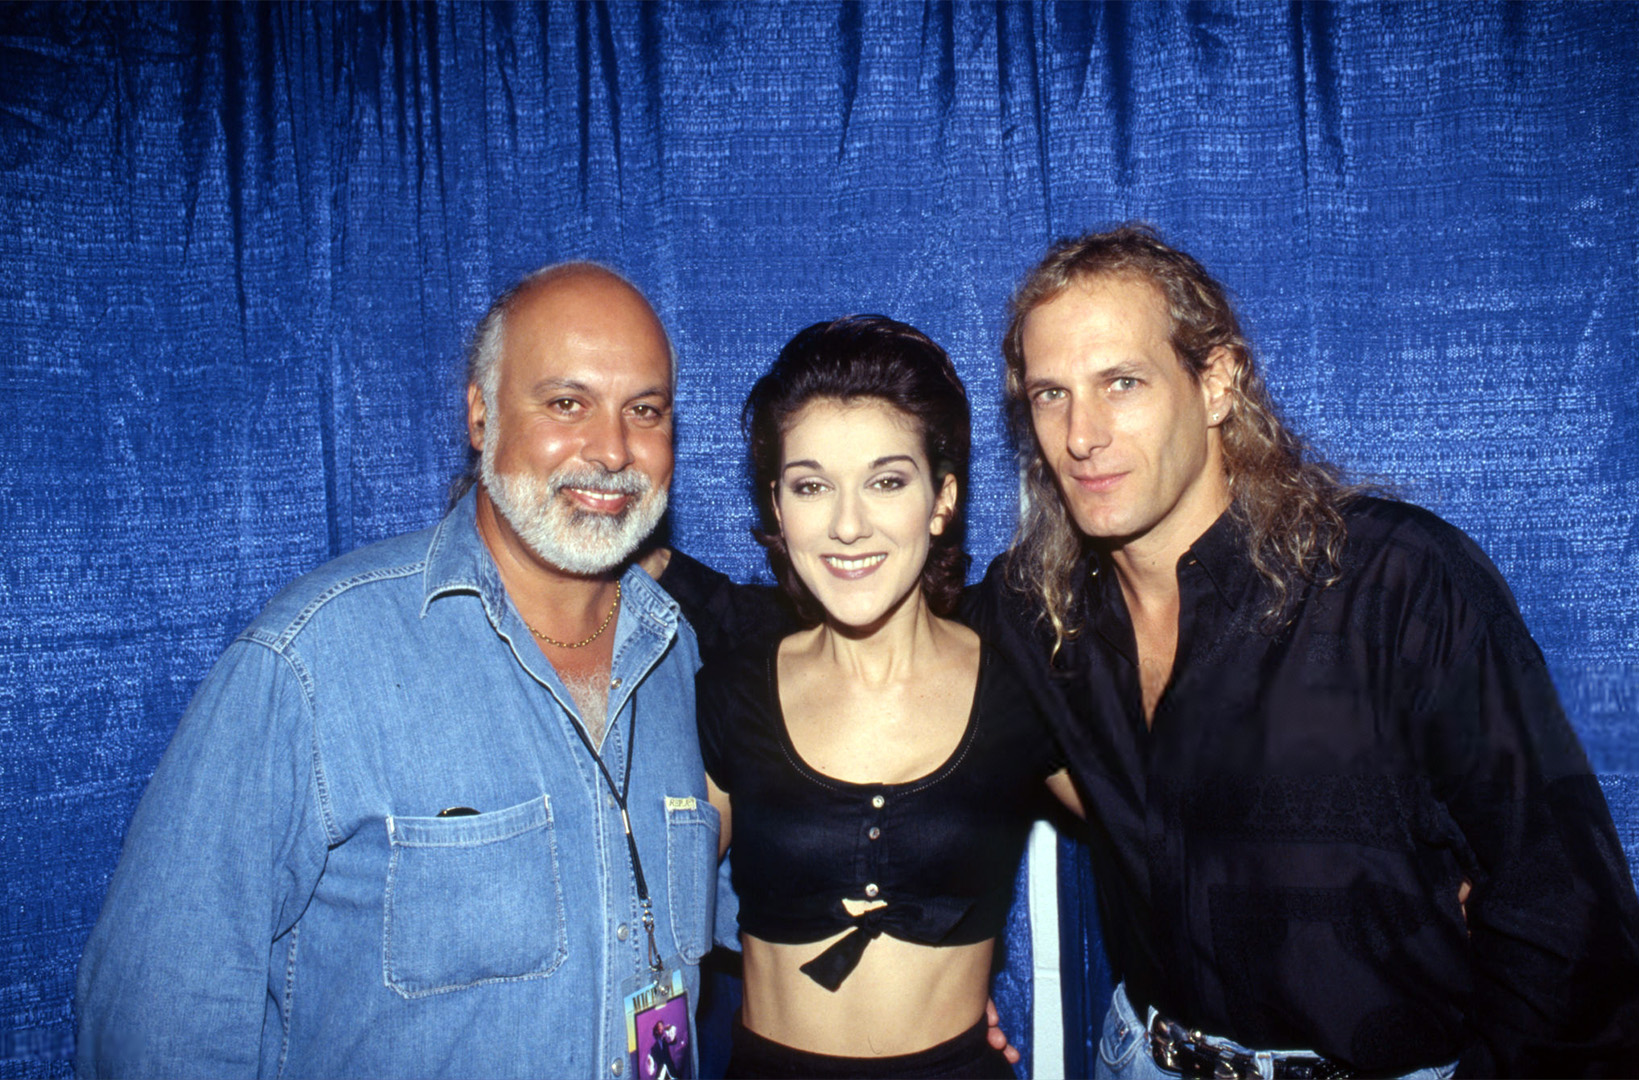 Céline Dion, René Angélil et Michael Bolton (Photo by Michel PONOMAREFF/Gamma-Rapho via Getty Images)